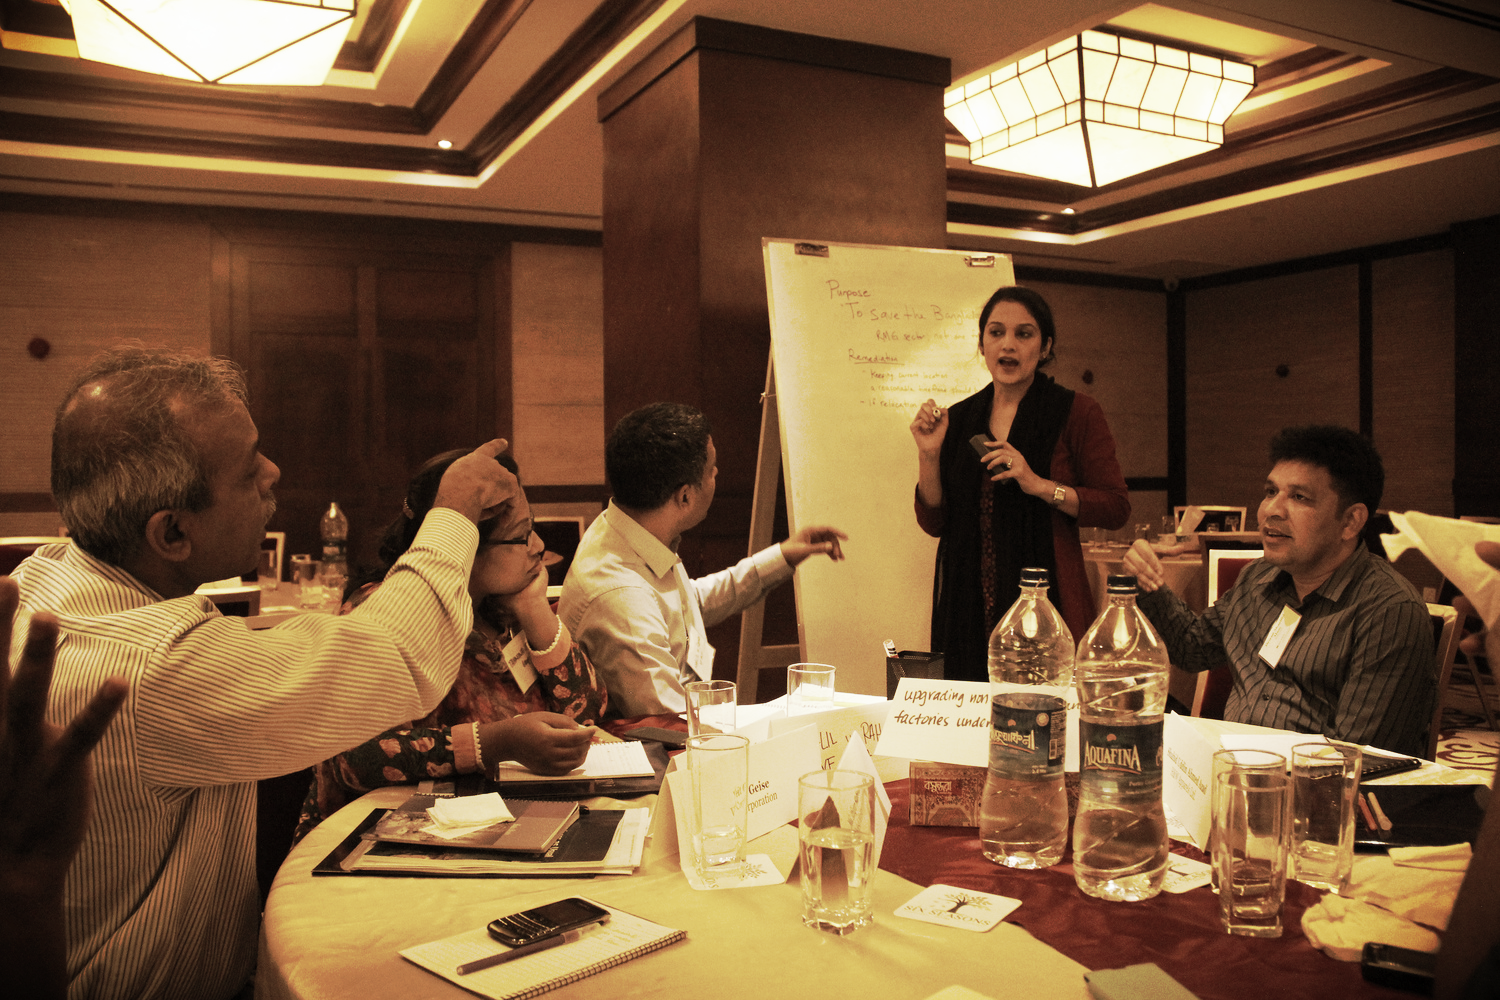 Sourcing agents, company representatives, and civil society organizations debate the future of the garment industry, Dhaka, May 2014.